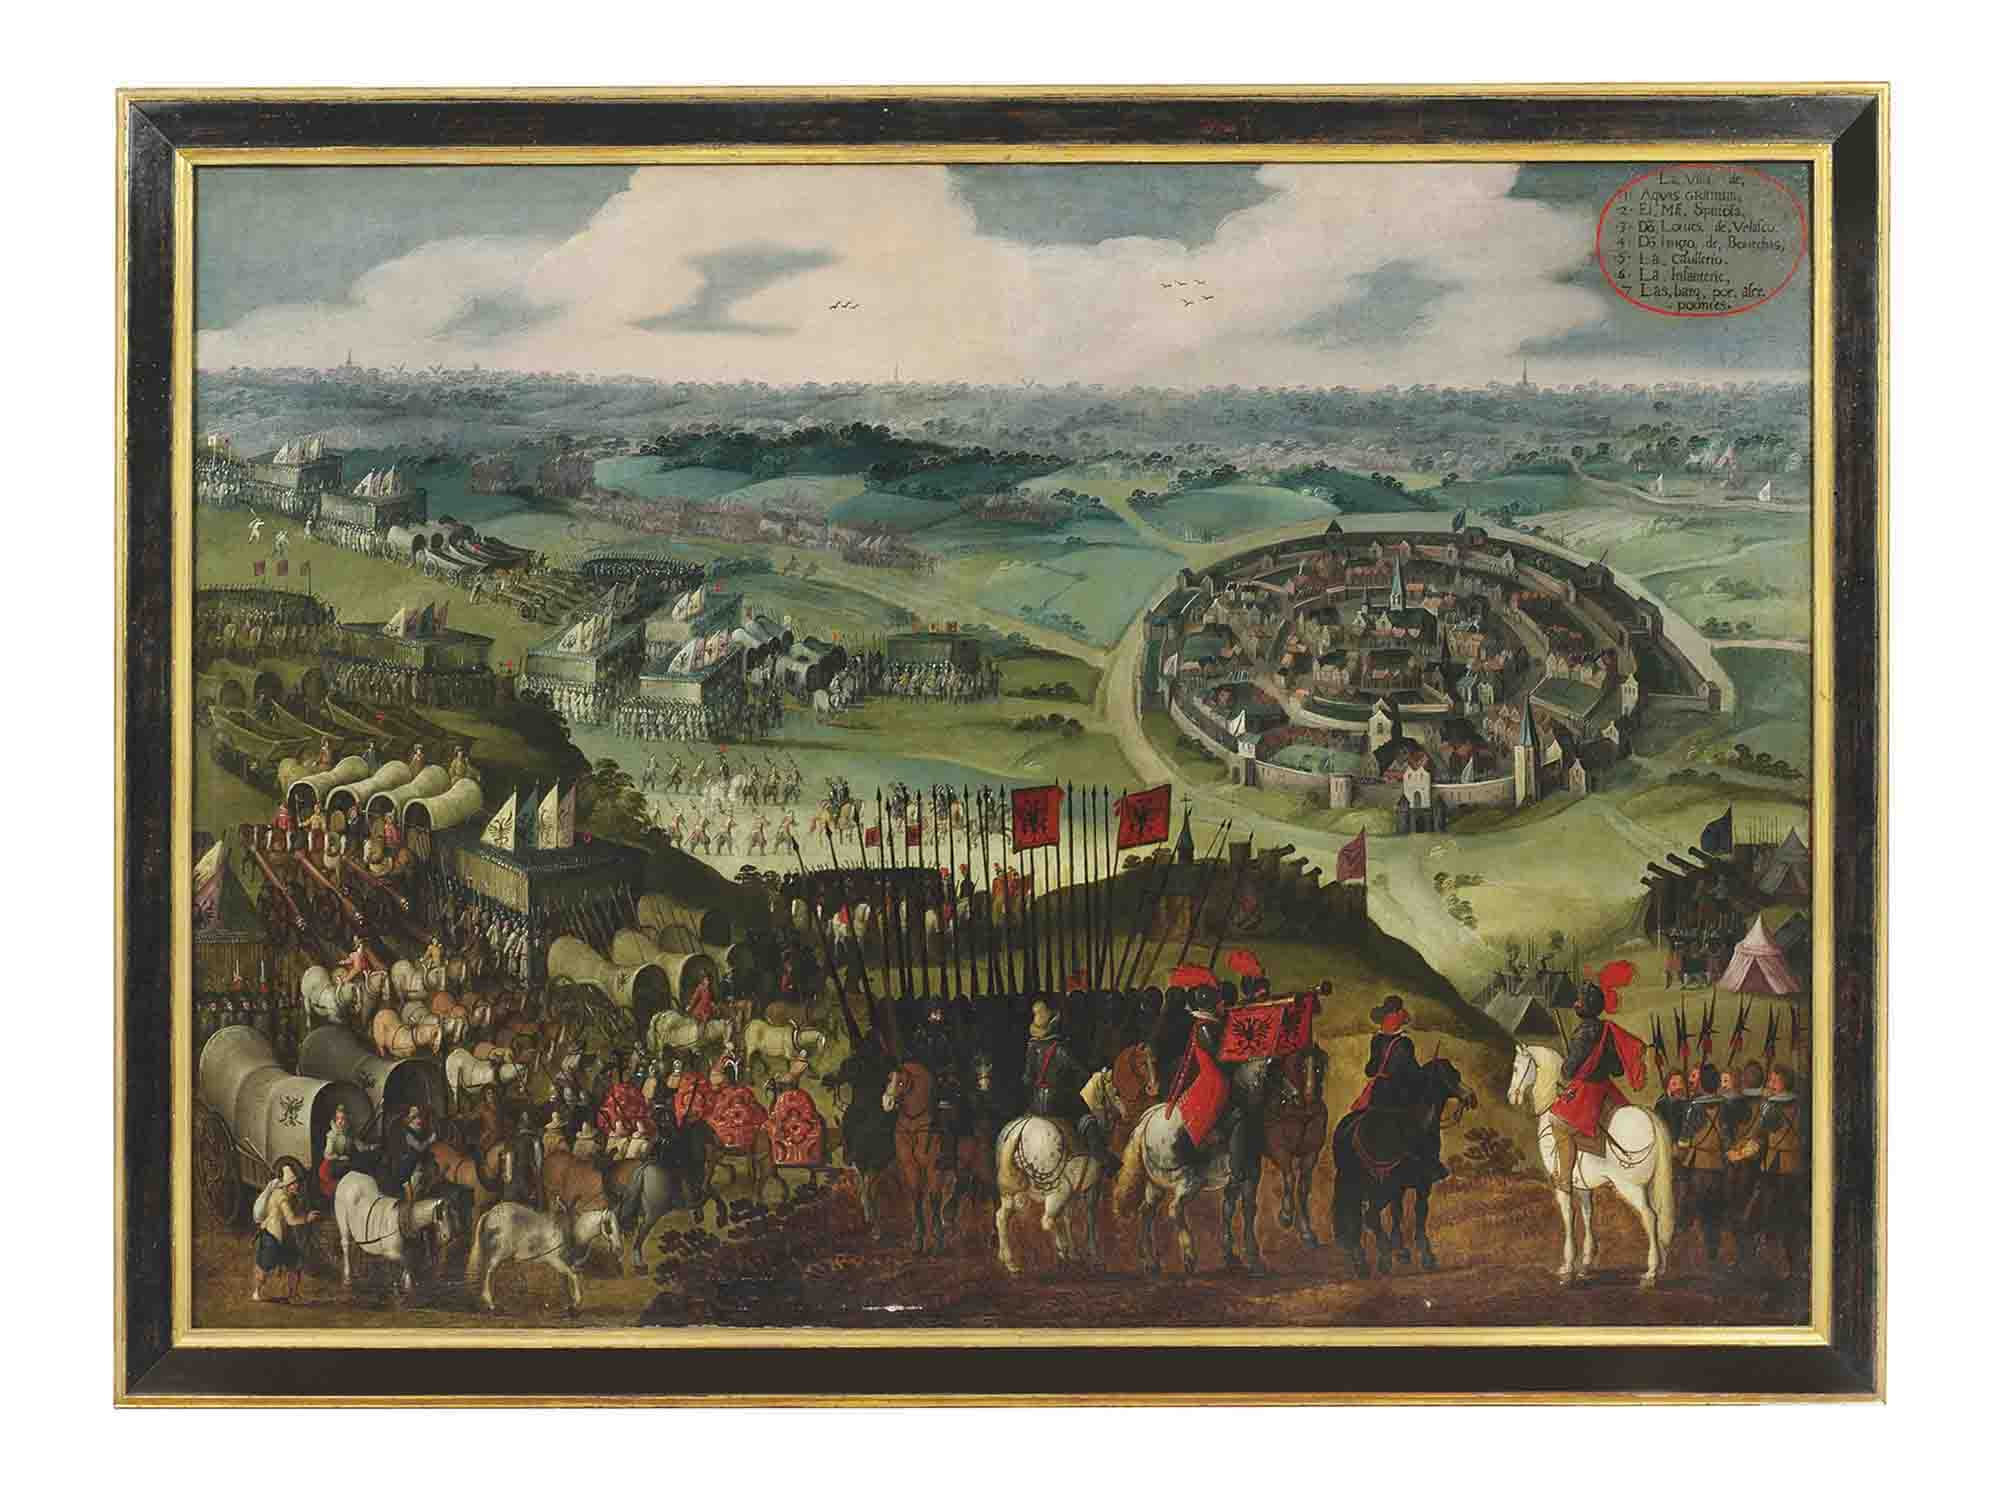 The Siege of Aachen